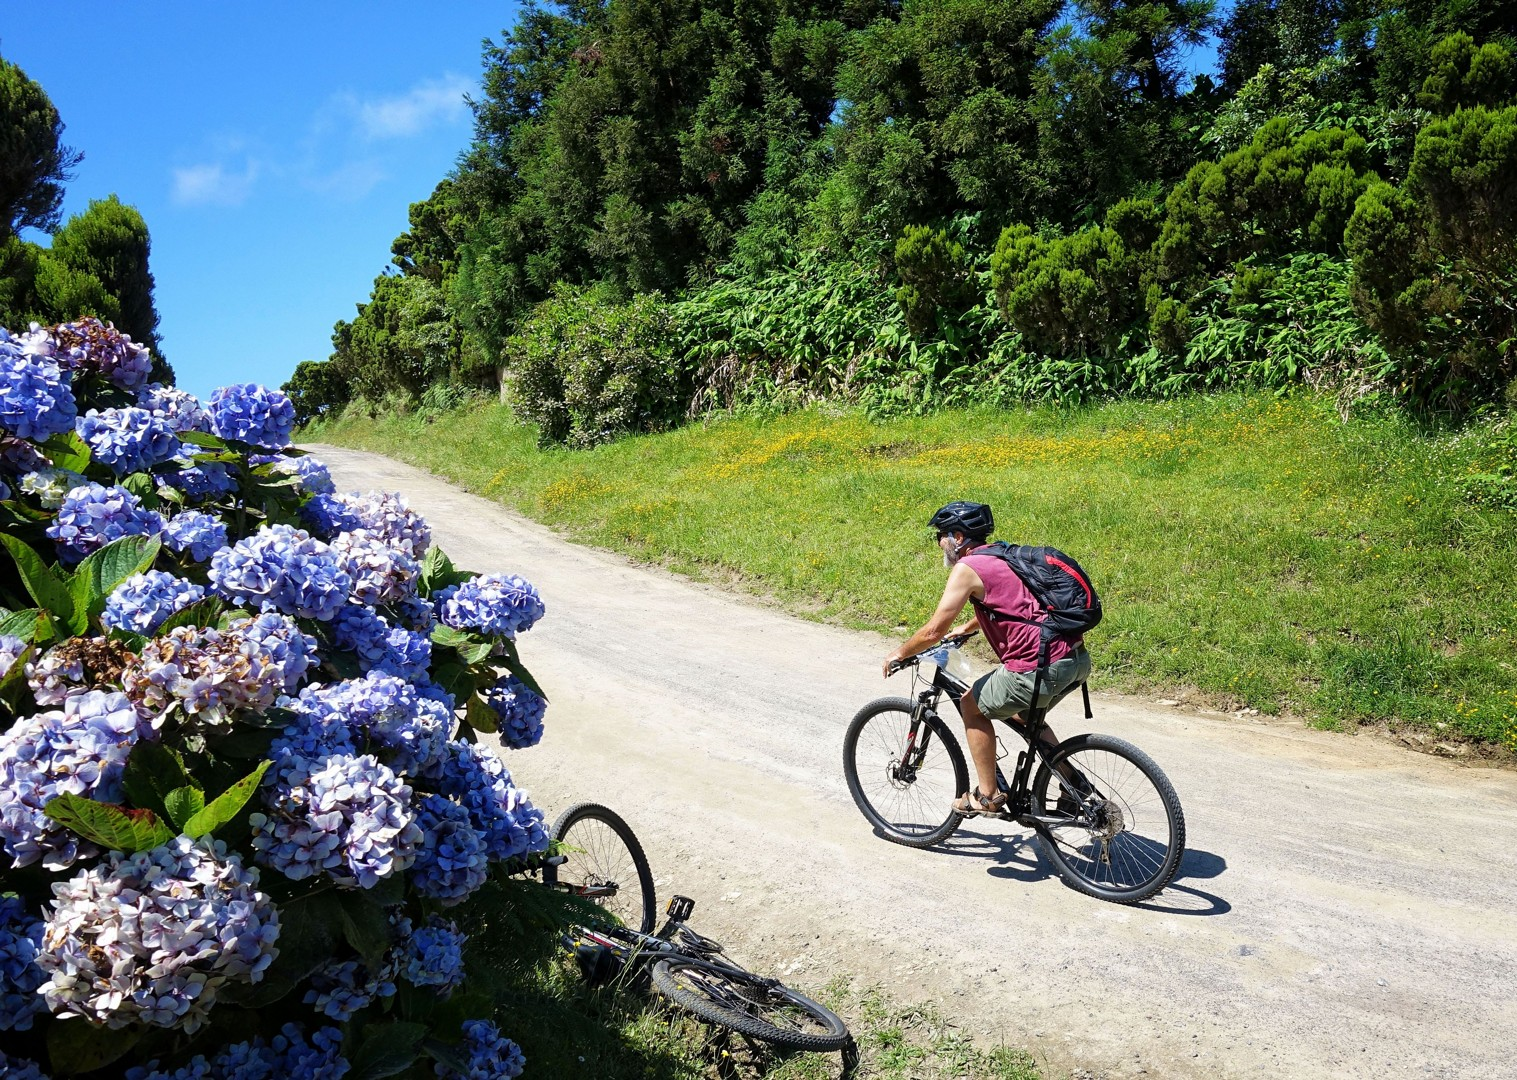 tronqueria-forests-guided-leisure-cycling-azores.jpg - The Azores - Islands and Volcanoes - Guided Leisure Cycling Holiday - Leisure Cycling